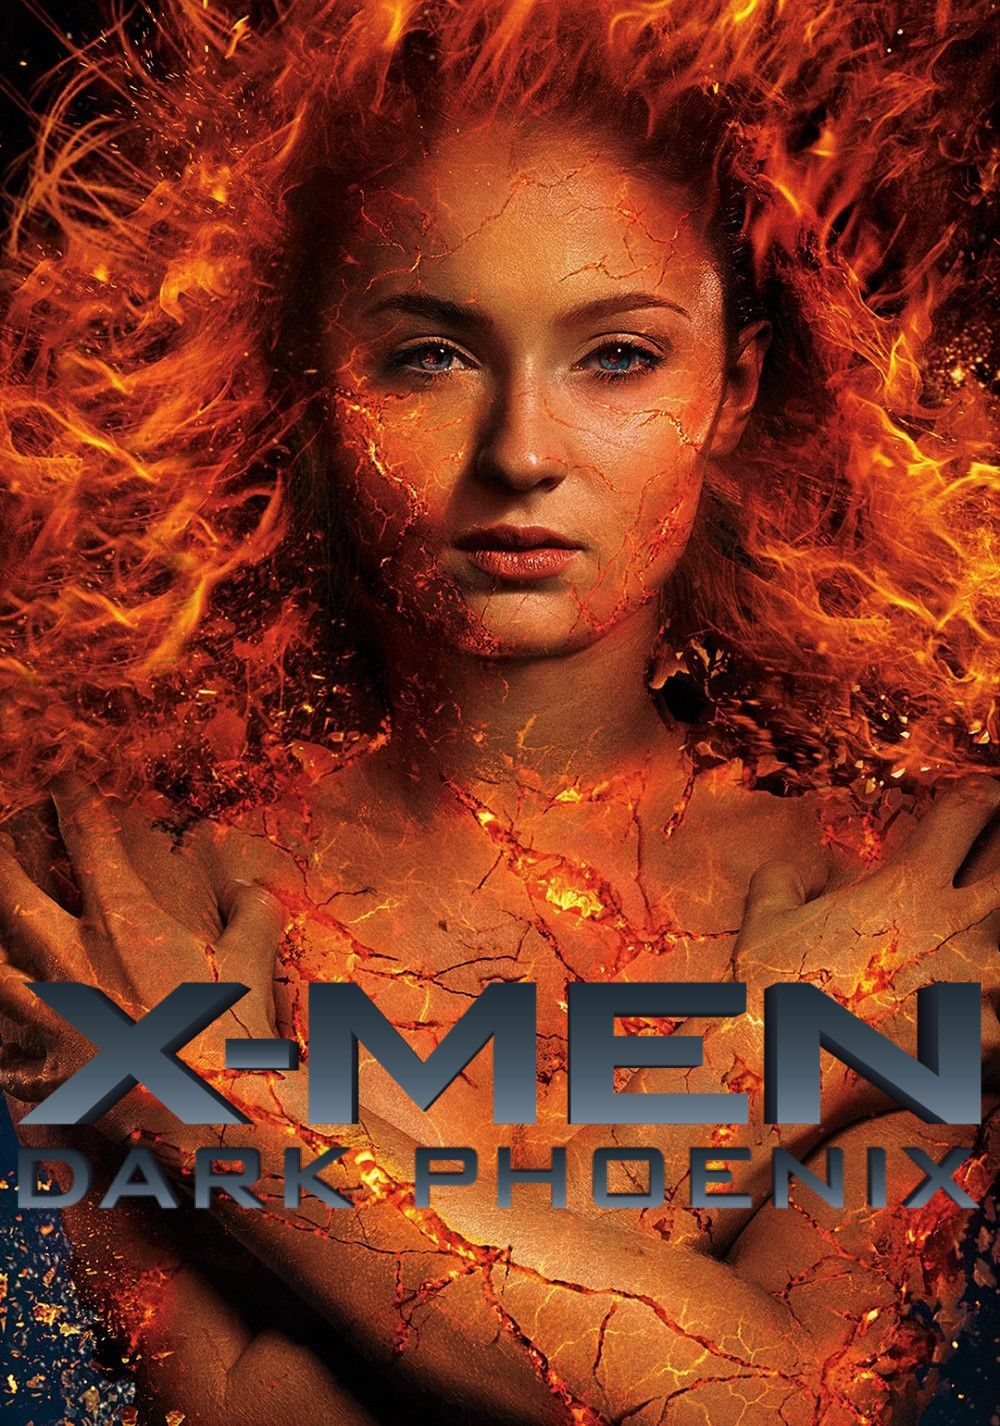 X Men Dark Phoenix 2019 A Solar Flare Changes The Rules